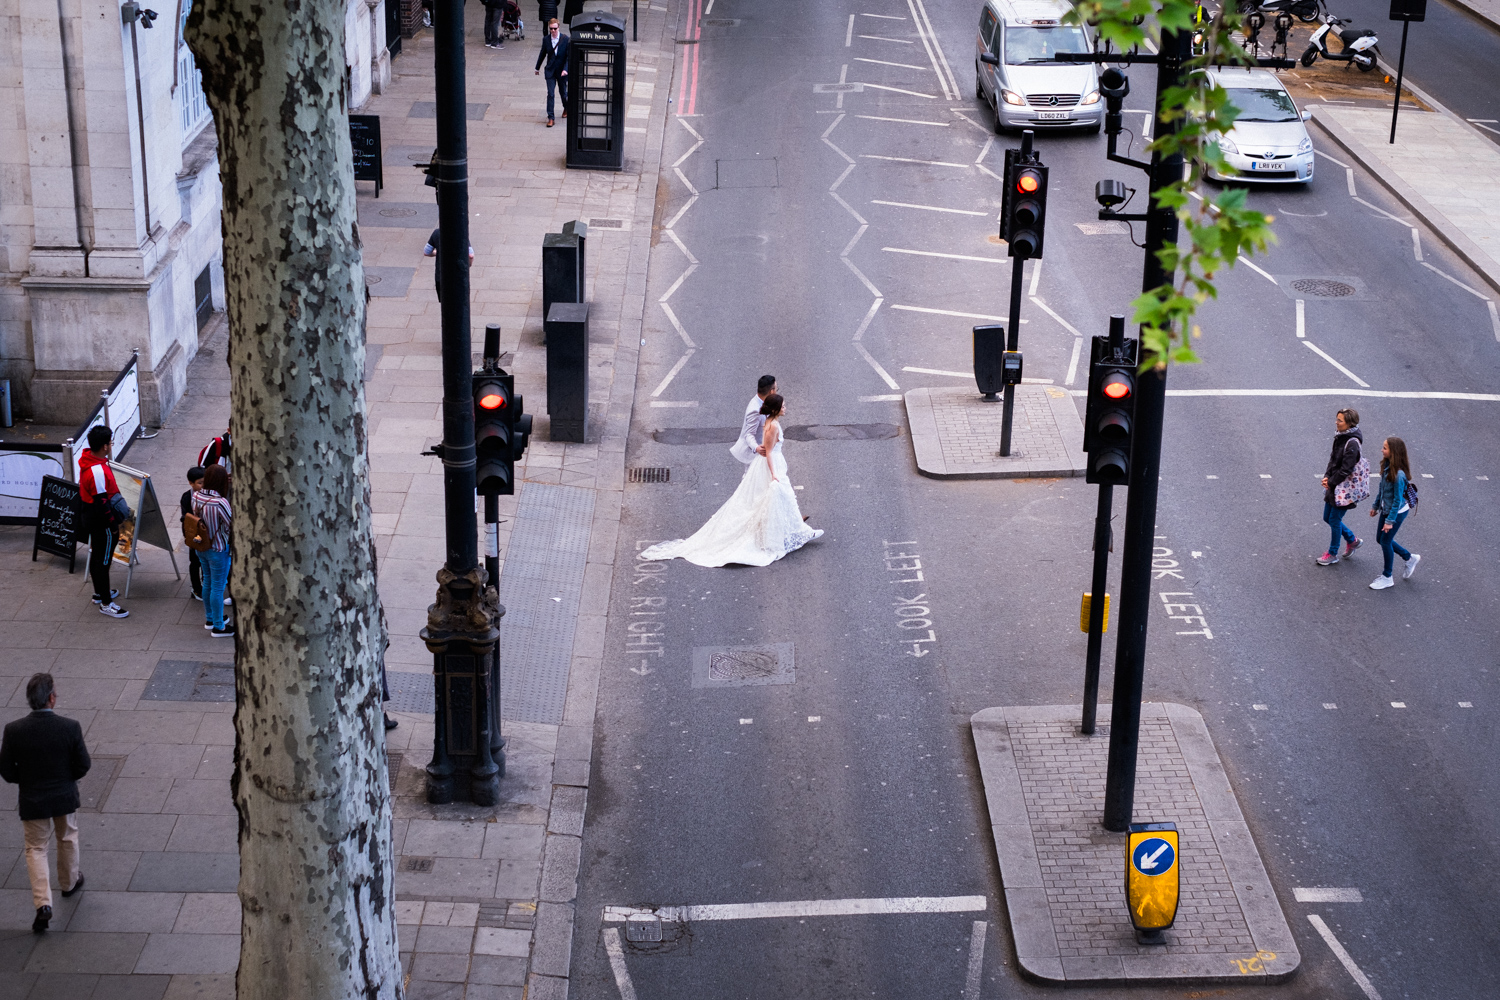 London pre-wedding photos - embankment